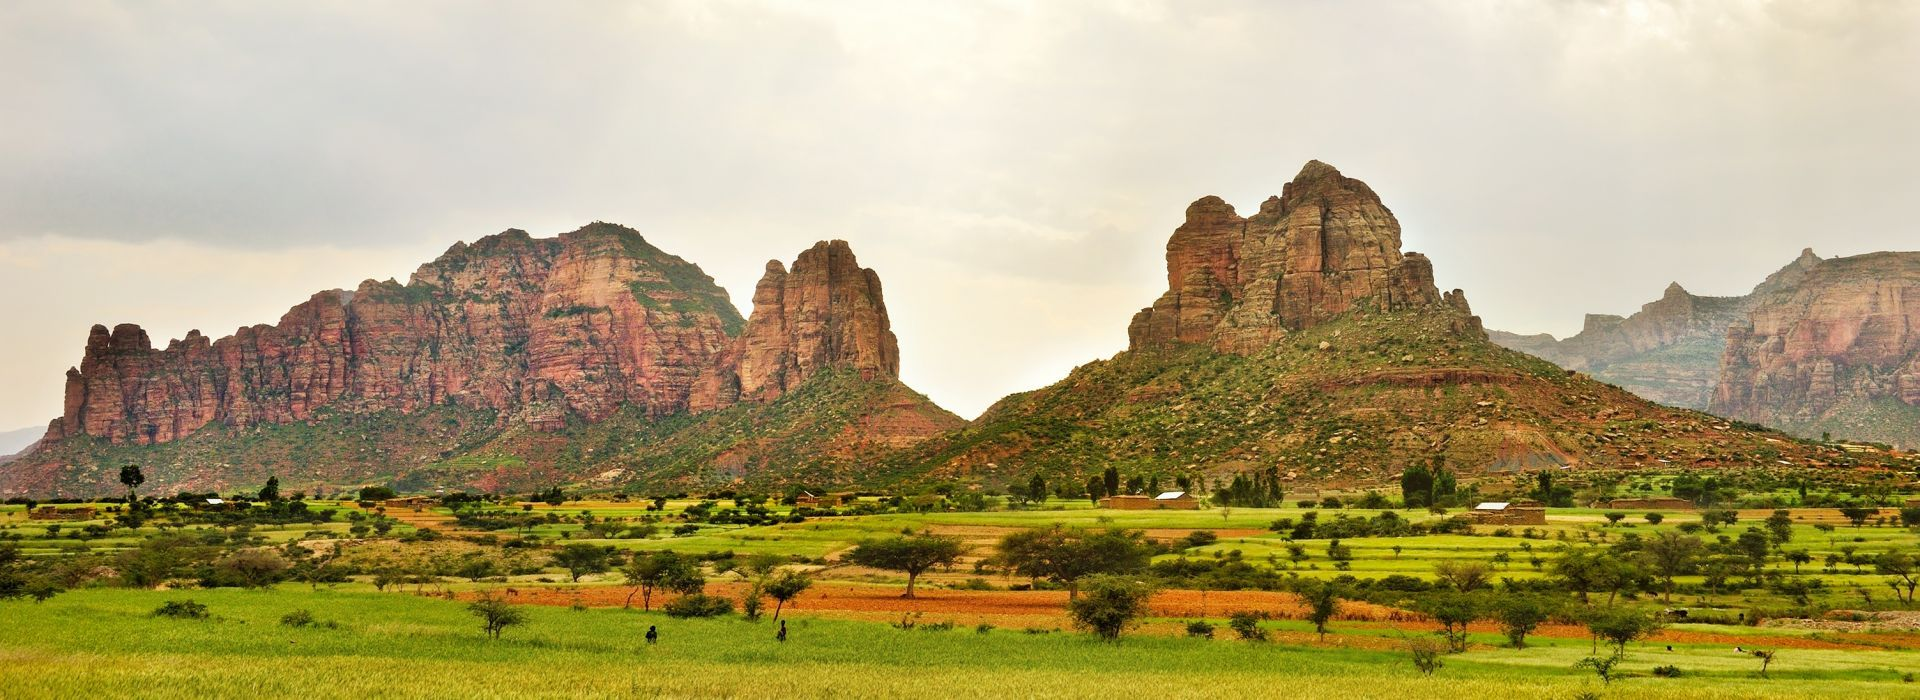 Sightseeing, attractions, culture and history Tours in Ethiopia